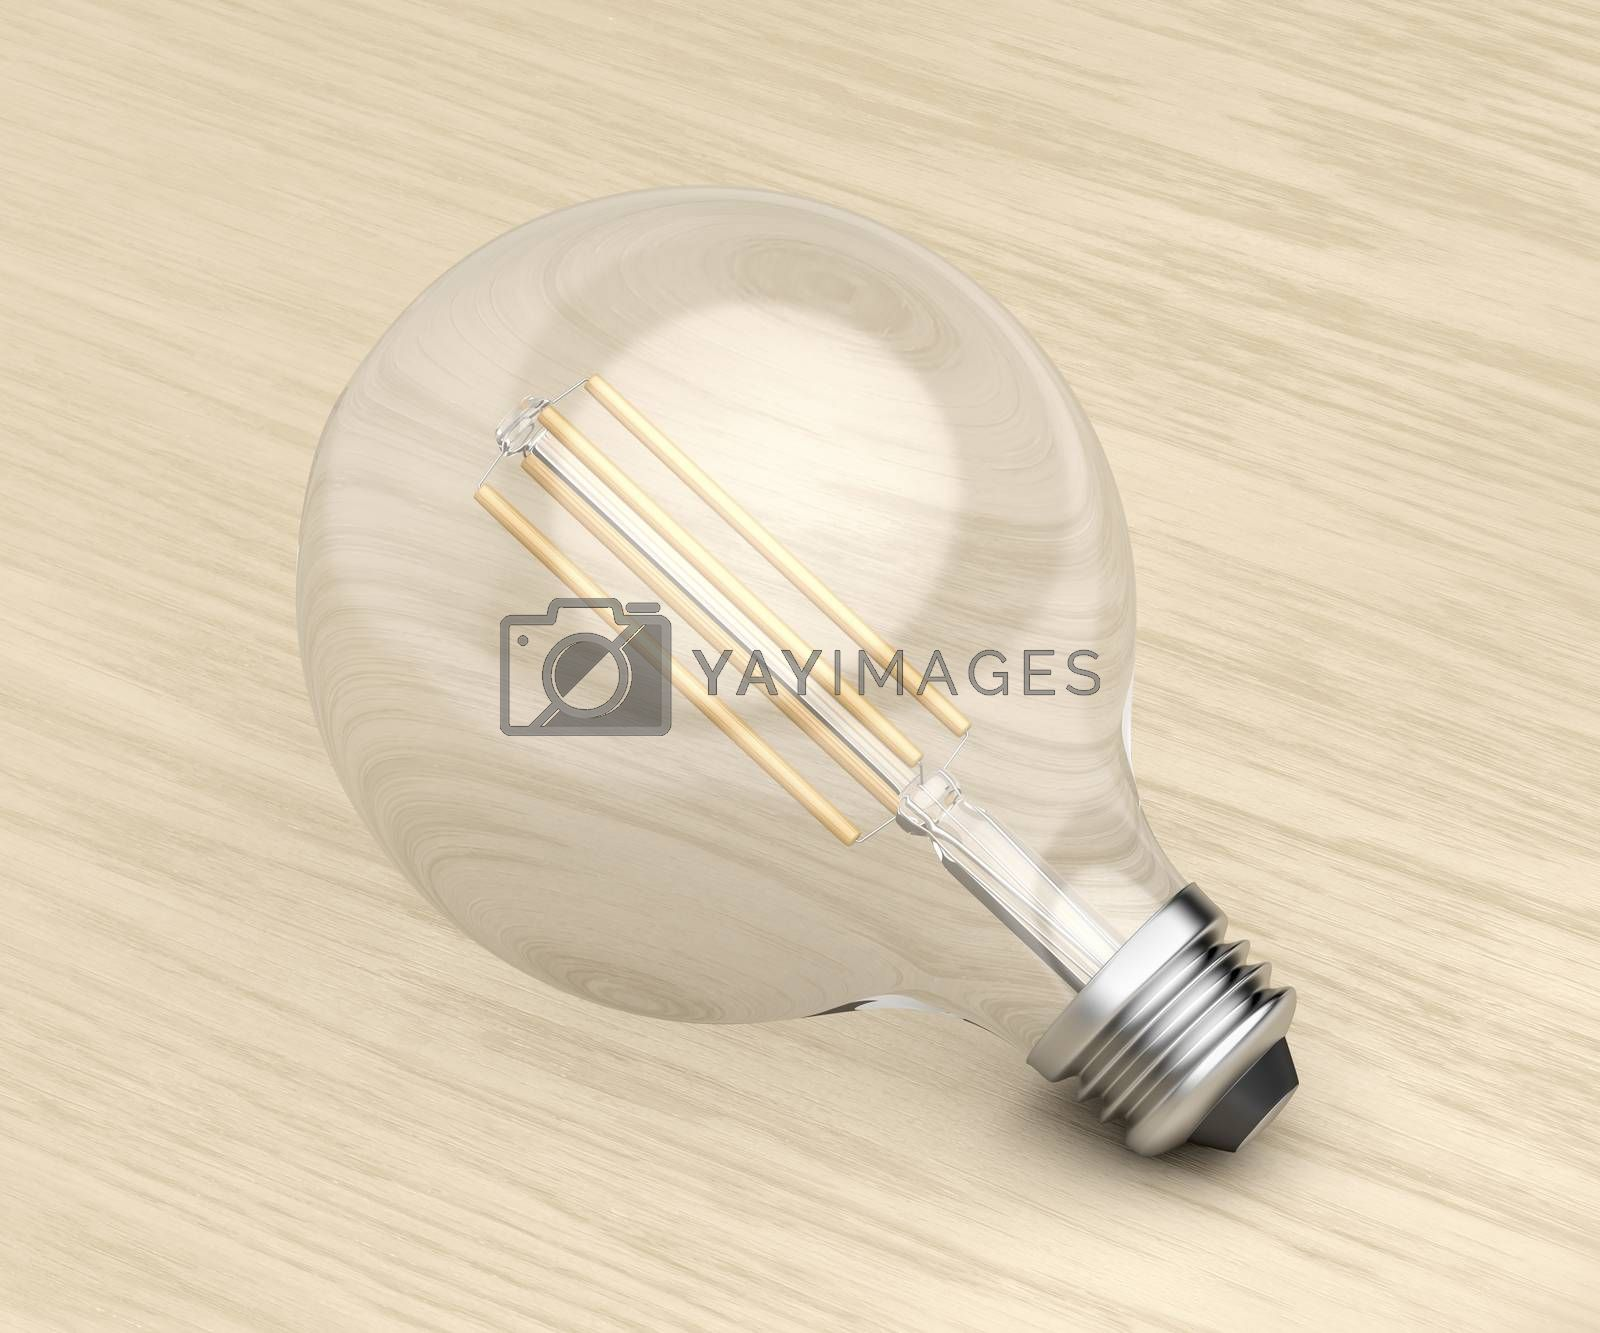 Decorative LED bulb on wooden background